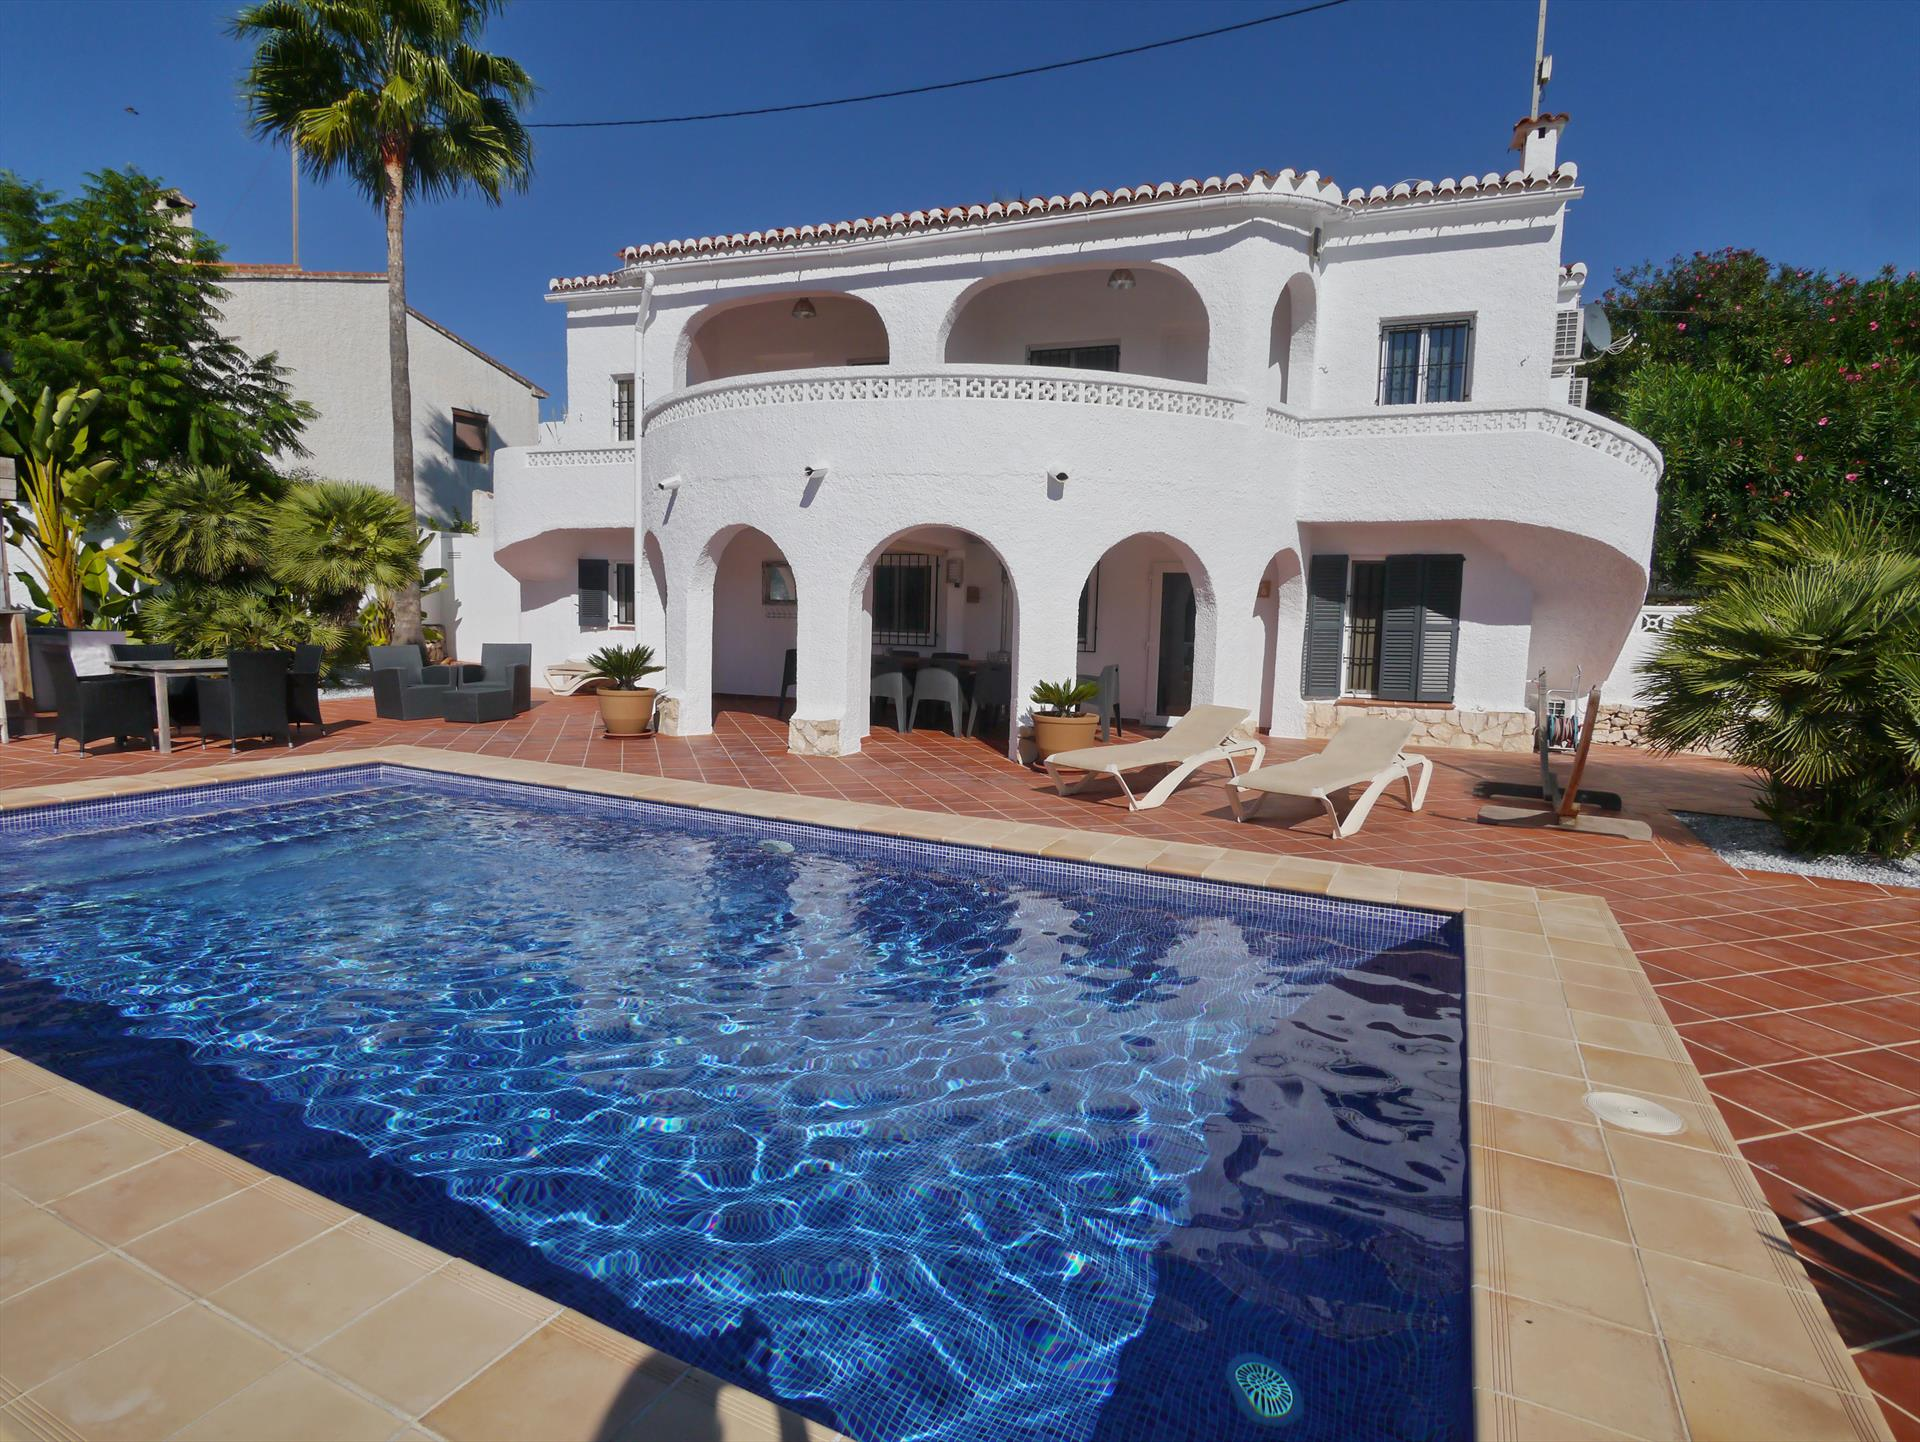 Thiago, Wonderful and comfortable villa in Benissa, on the Costa Blanca, Spain  with private pool for 8 persons.....